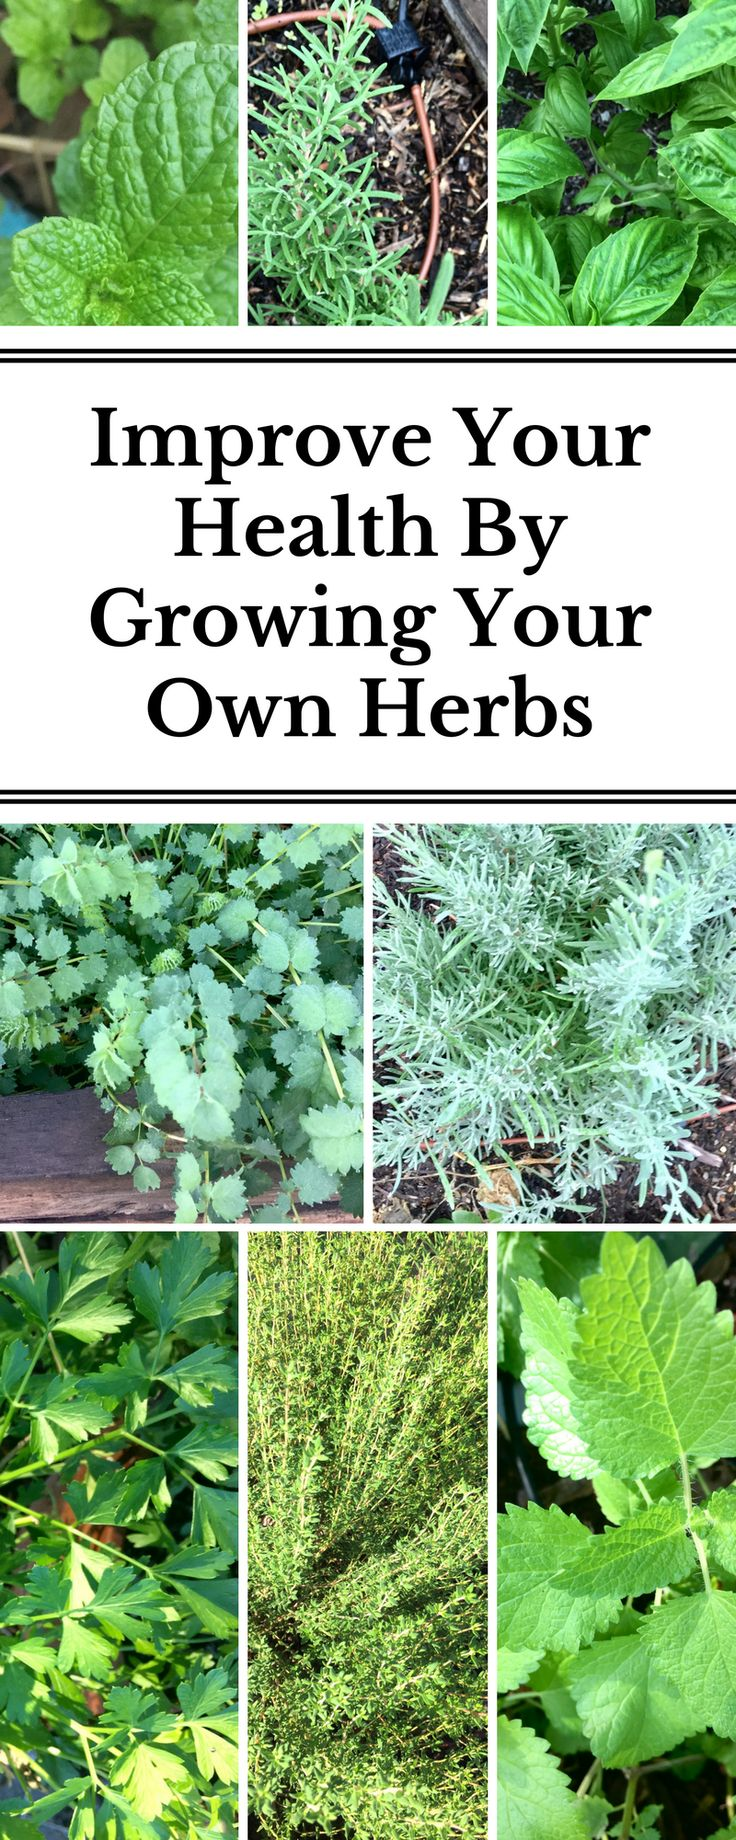 Herbs are among the best plants to start growing in your garden because you can use them in almost every dish without being wasteful (since fresh bundles are so big at the store) and they work as preventative medicine for you while improving your health! It's a win-win!